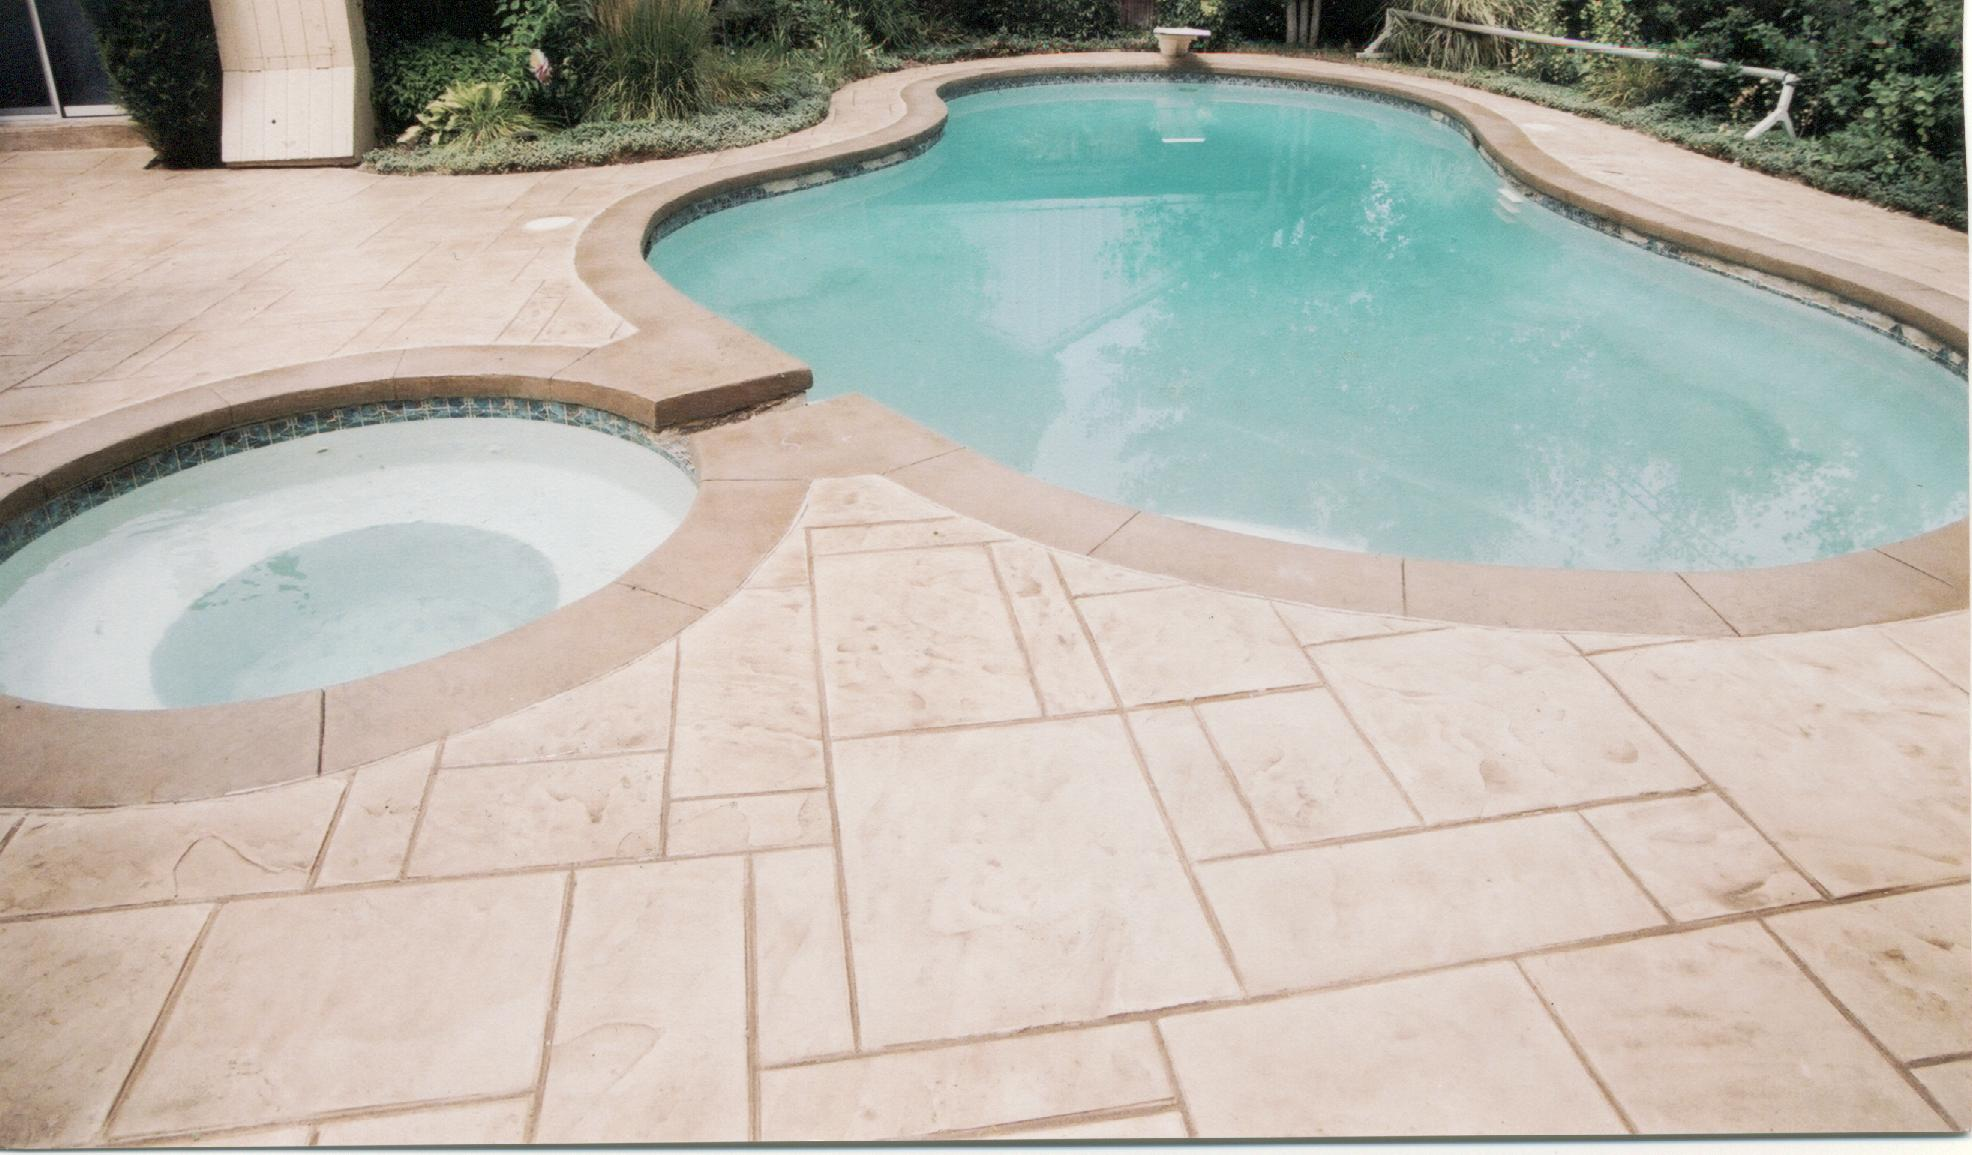 Decorative concrete pool decks front range decorative for Concrete pool